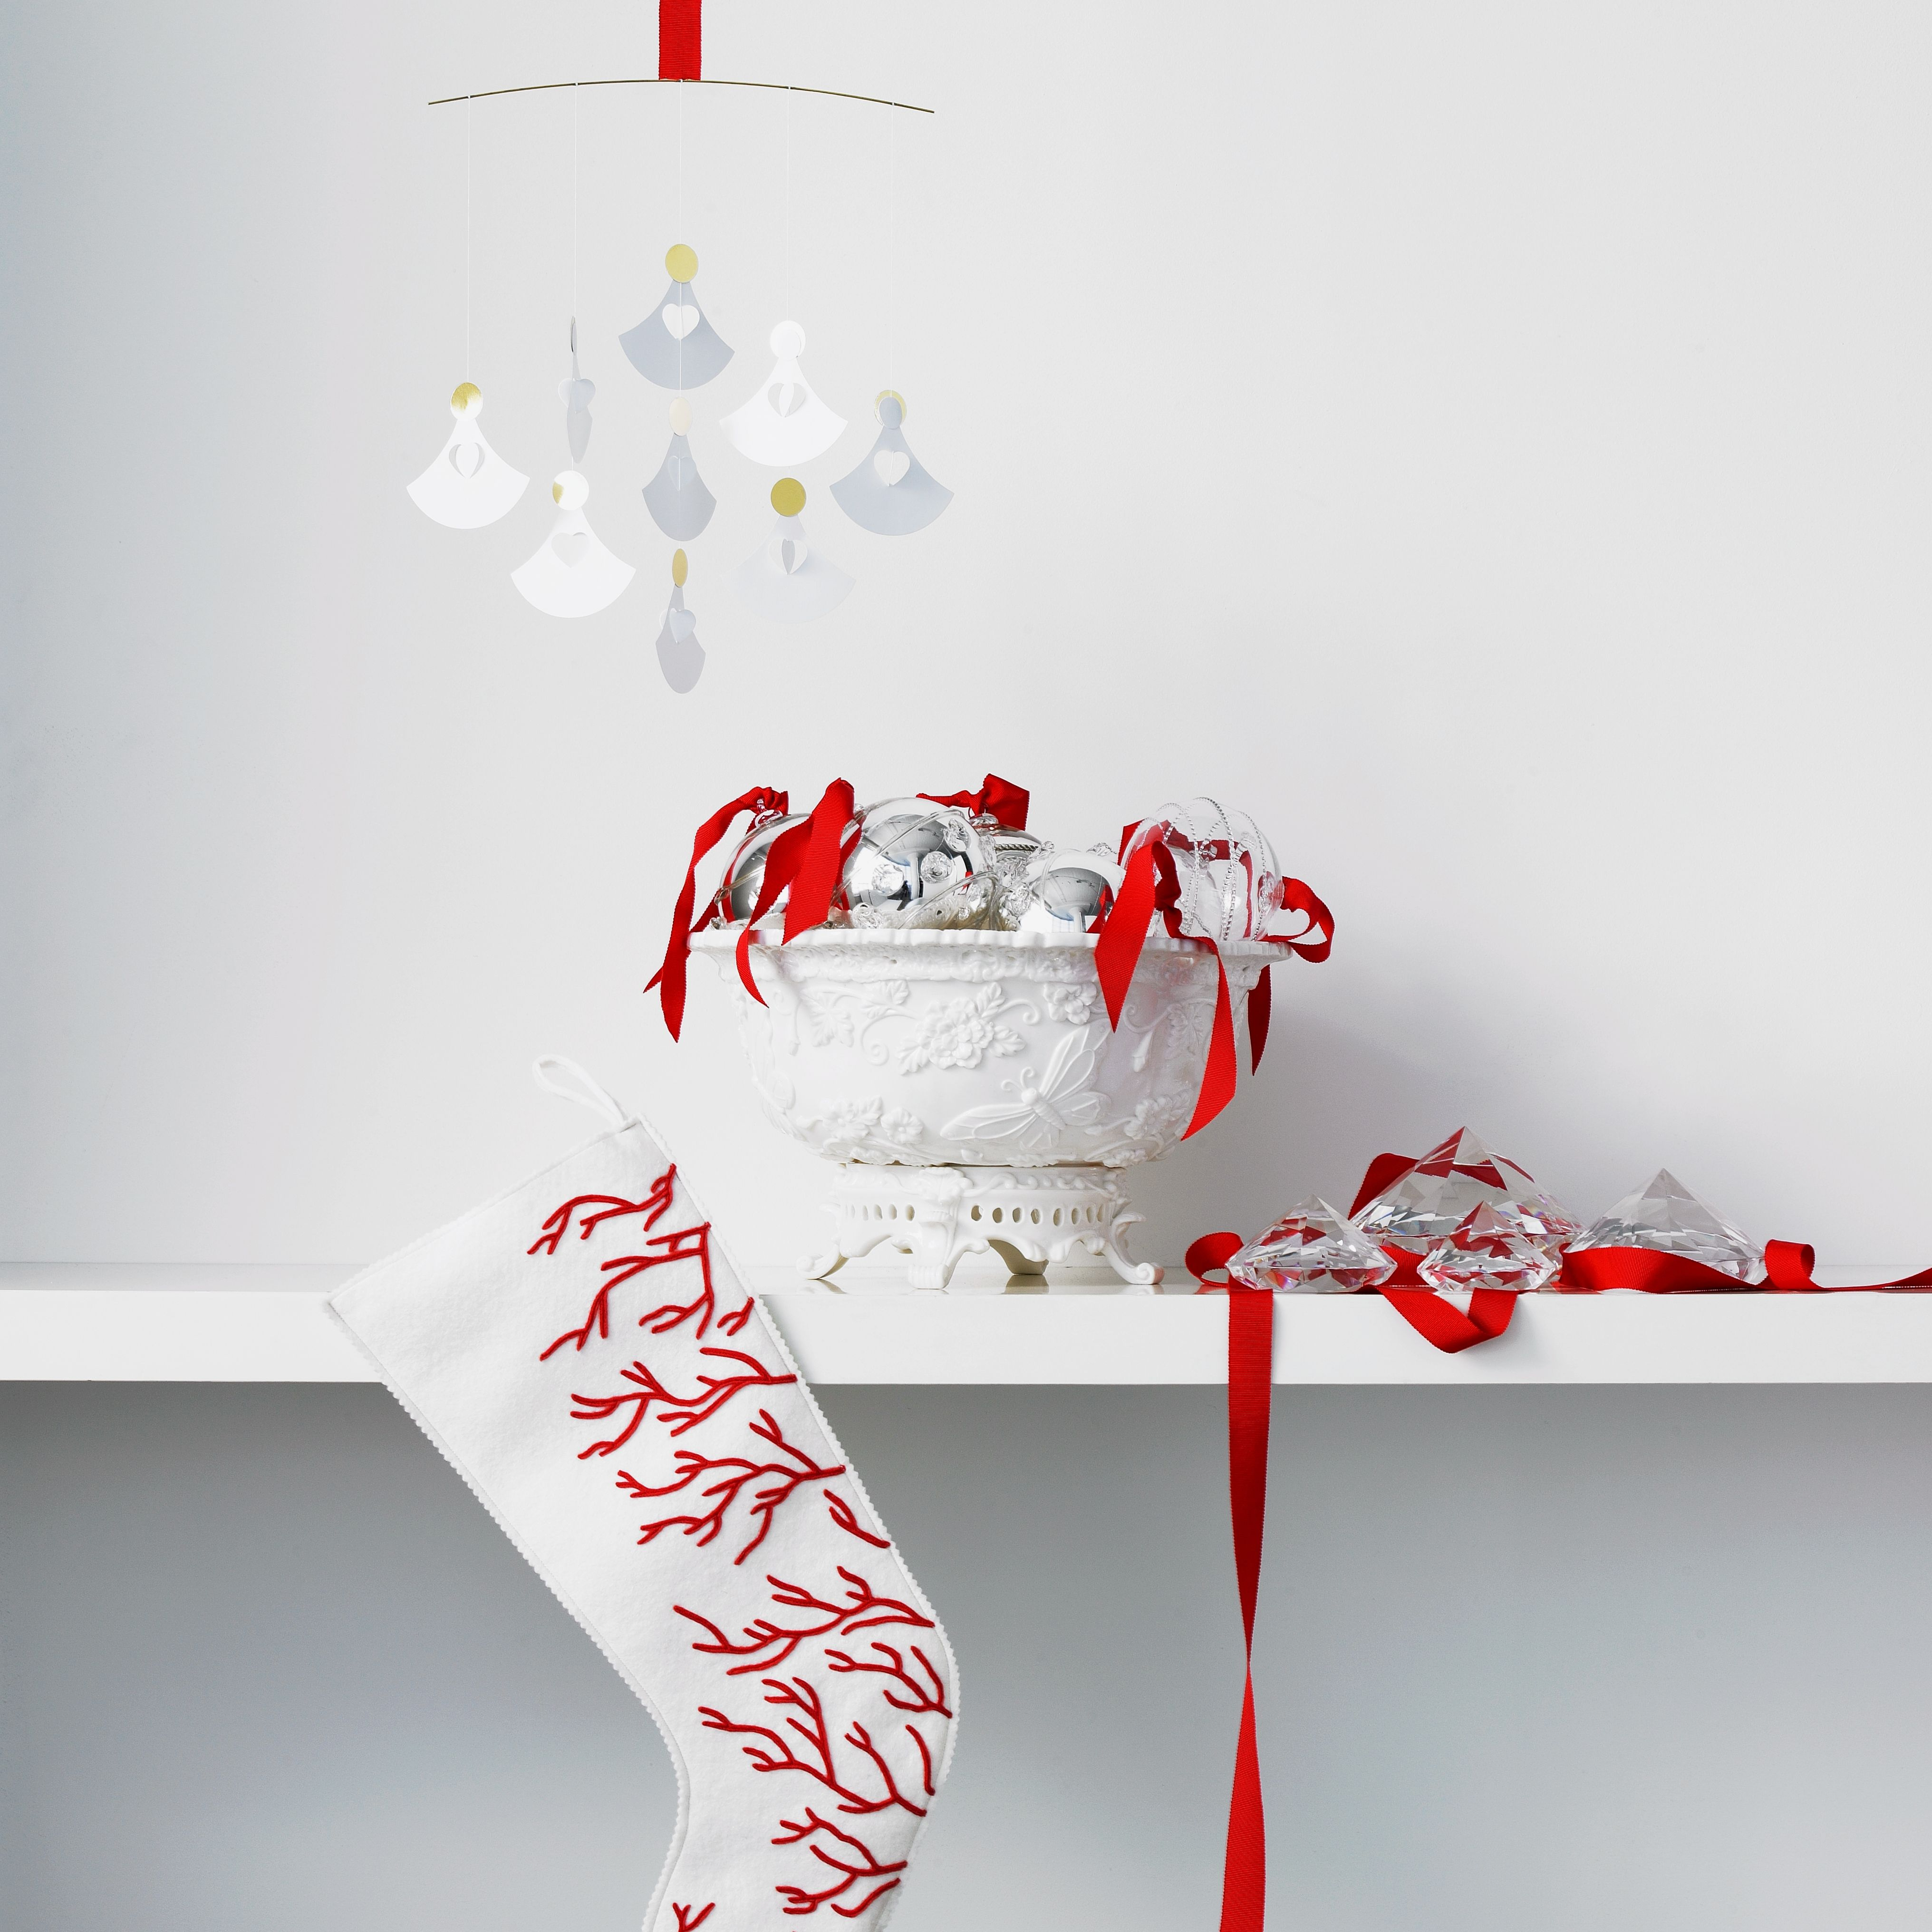 Soak a holiday stocking in crystal solution to make a glittery crystal decoration or ornament.